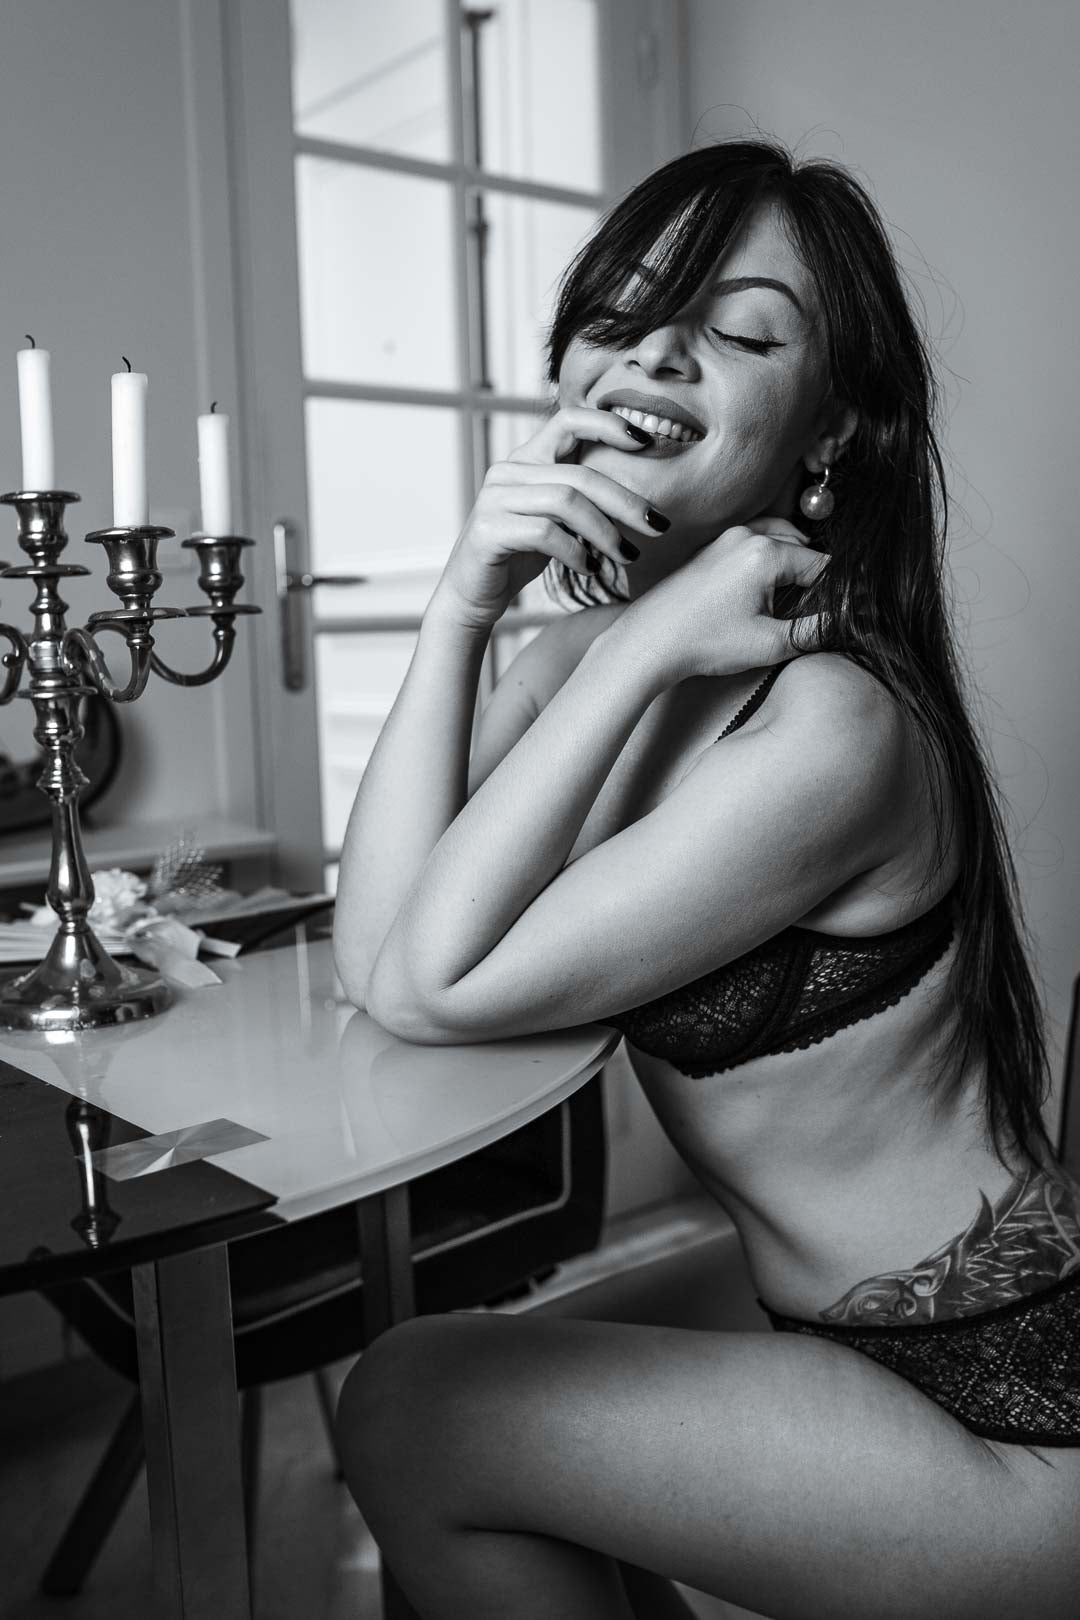 Black and white photograph of a smiling boudoir-style woman